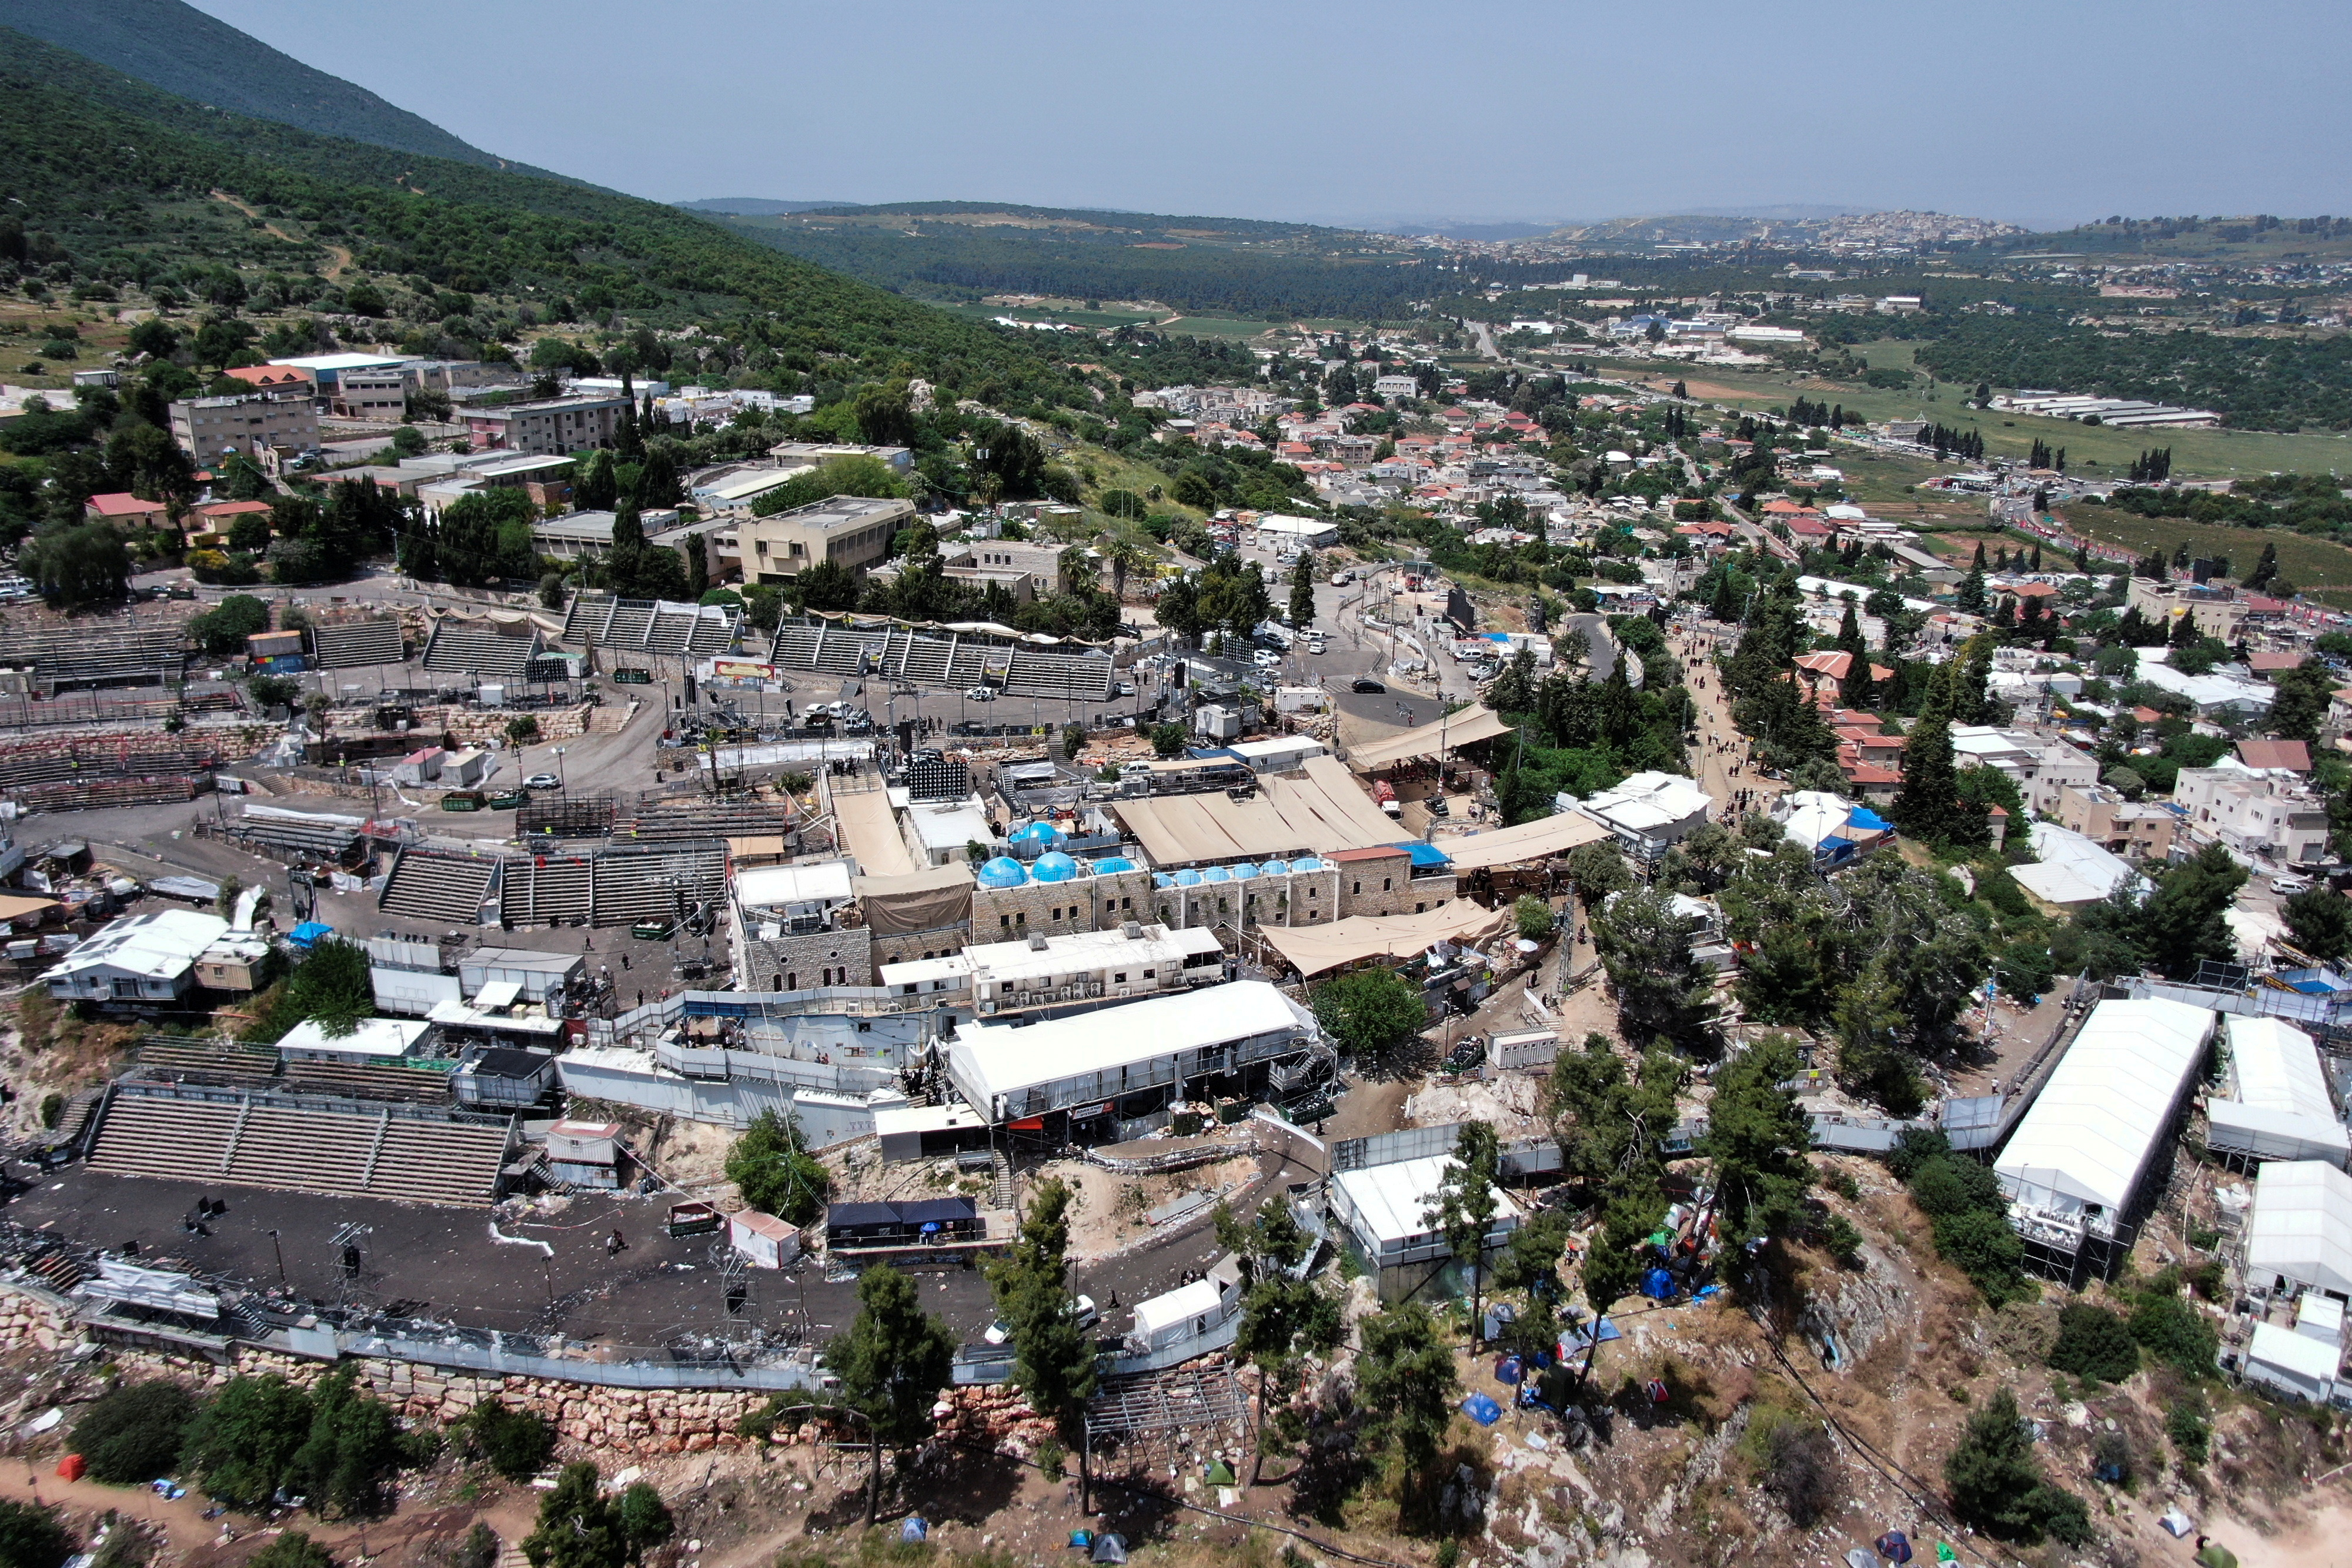 A view of Mount Meron where fatalities were reported among the thousands of ultra-Orthodox Jews, who gathered at the tomb of a 2nd-century sage for annual commemorations that include all-night prayer and dance, Israel April 30, 2021. Picture taken with a drone. REUTERS/Ilan Rosenberg